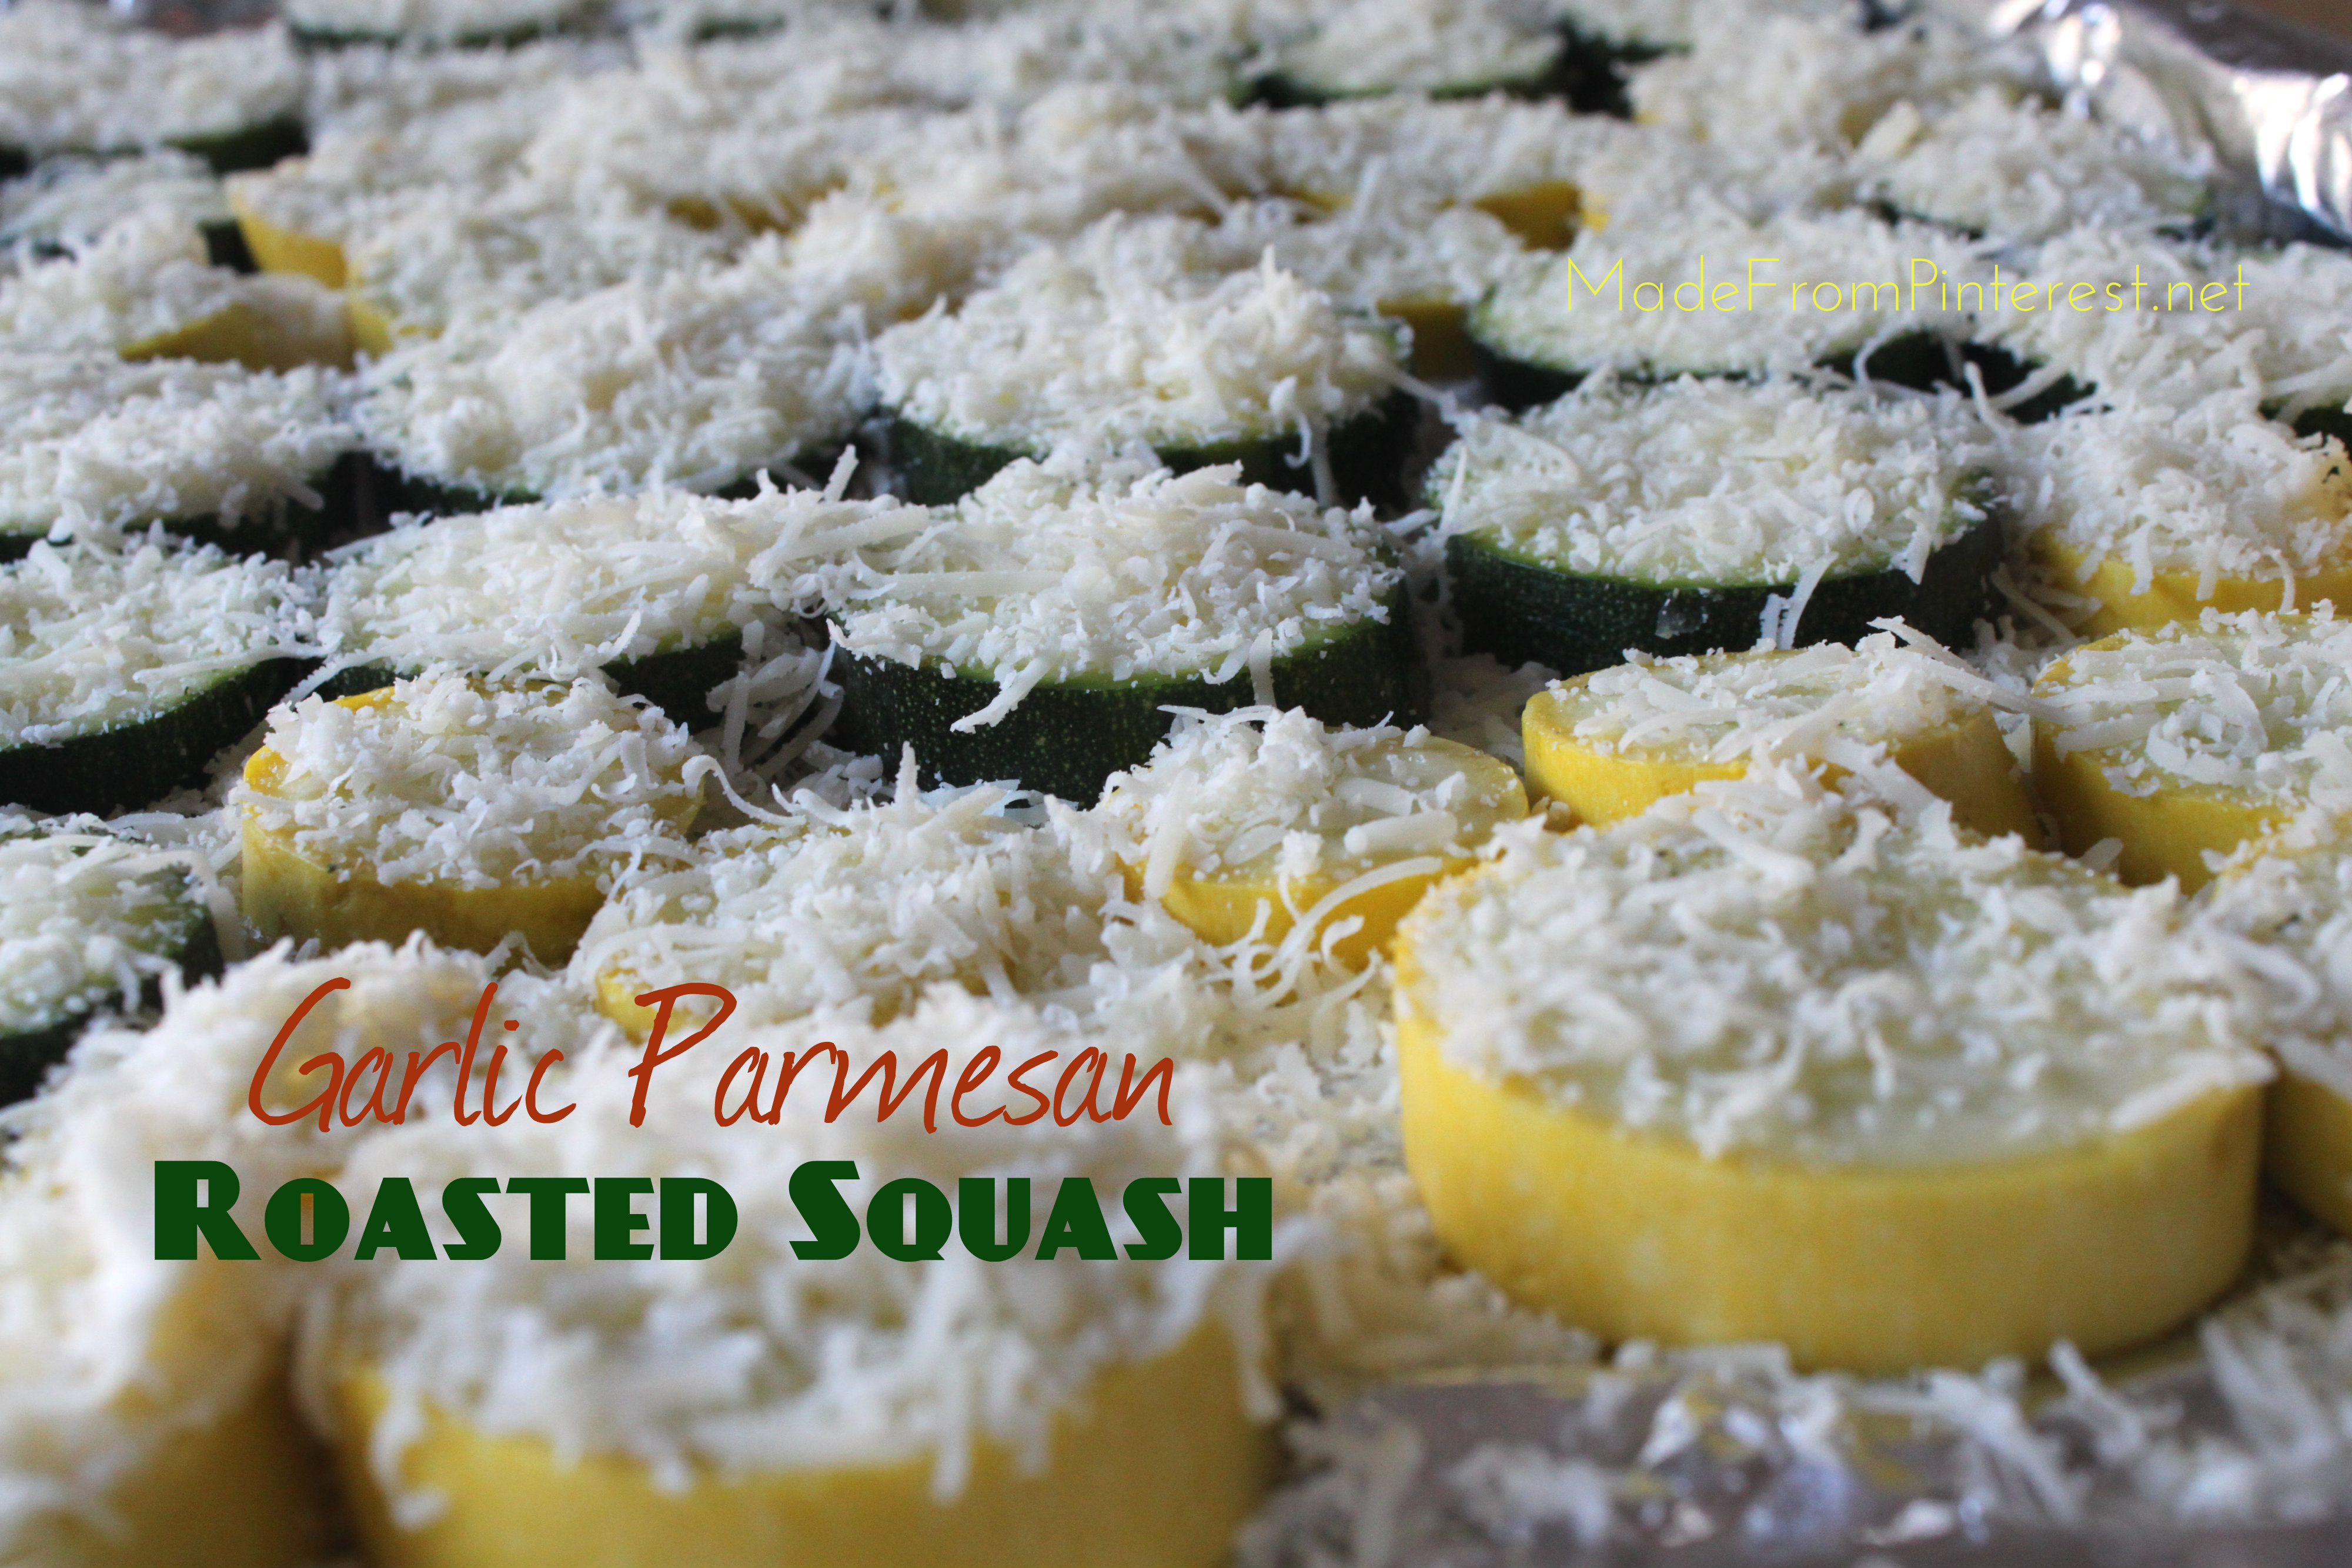 Garlic Parmesan Roasted Squash recipe at MadeFromPinterest.net